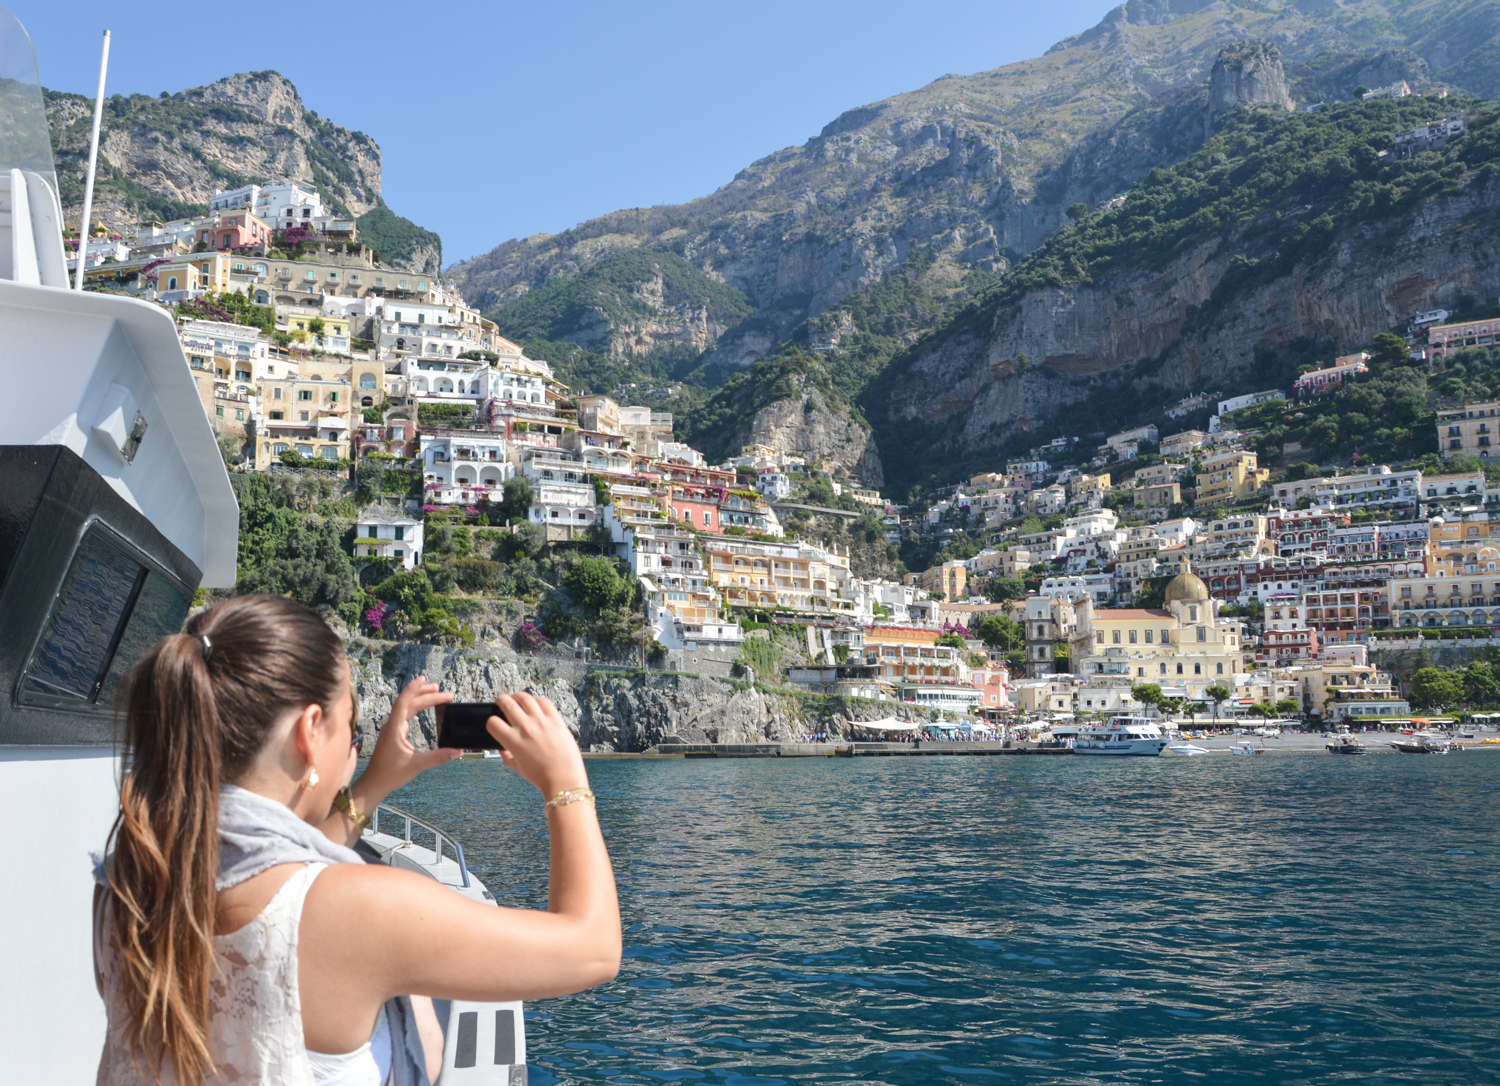 Taking the Ferry to Positano